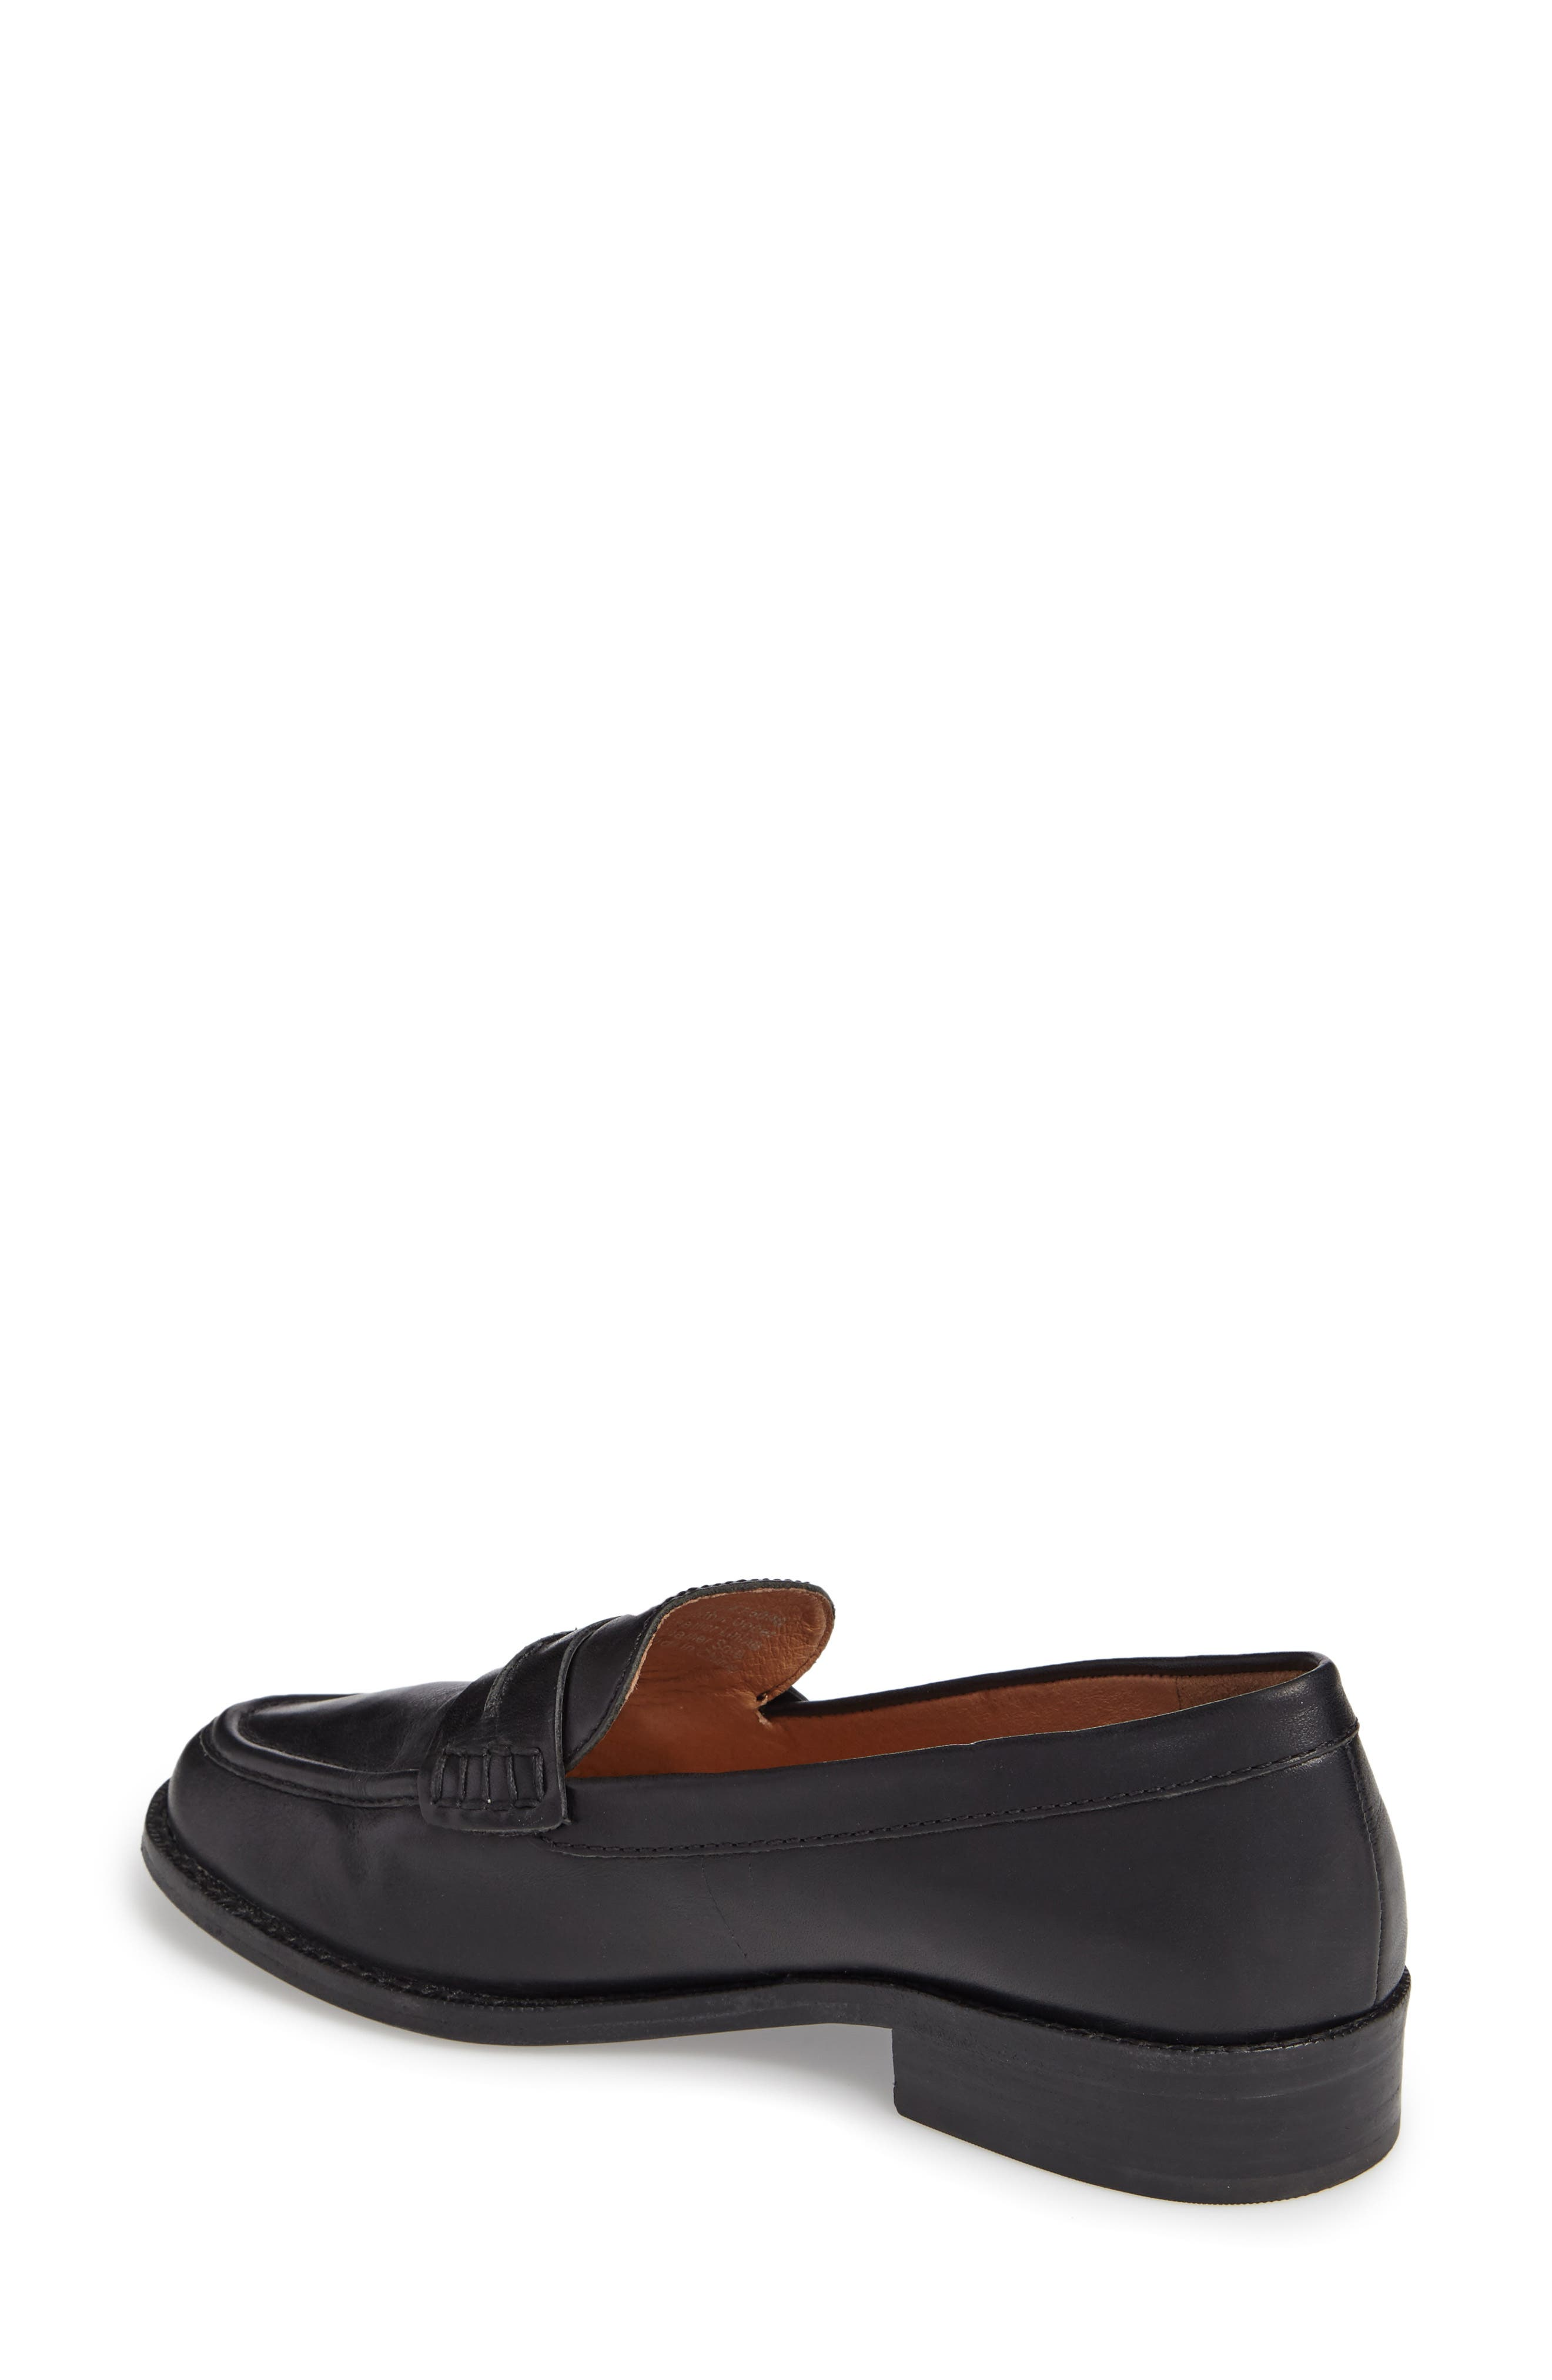 MADEWELL, The Elinor Loafer, Alternate thumbnail 2, color, 001